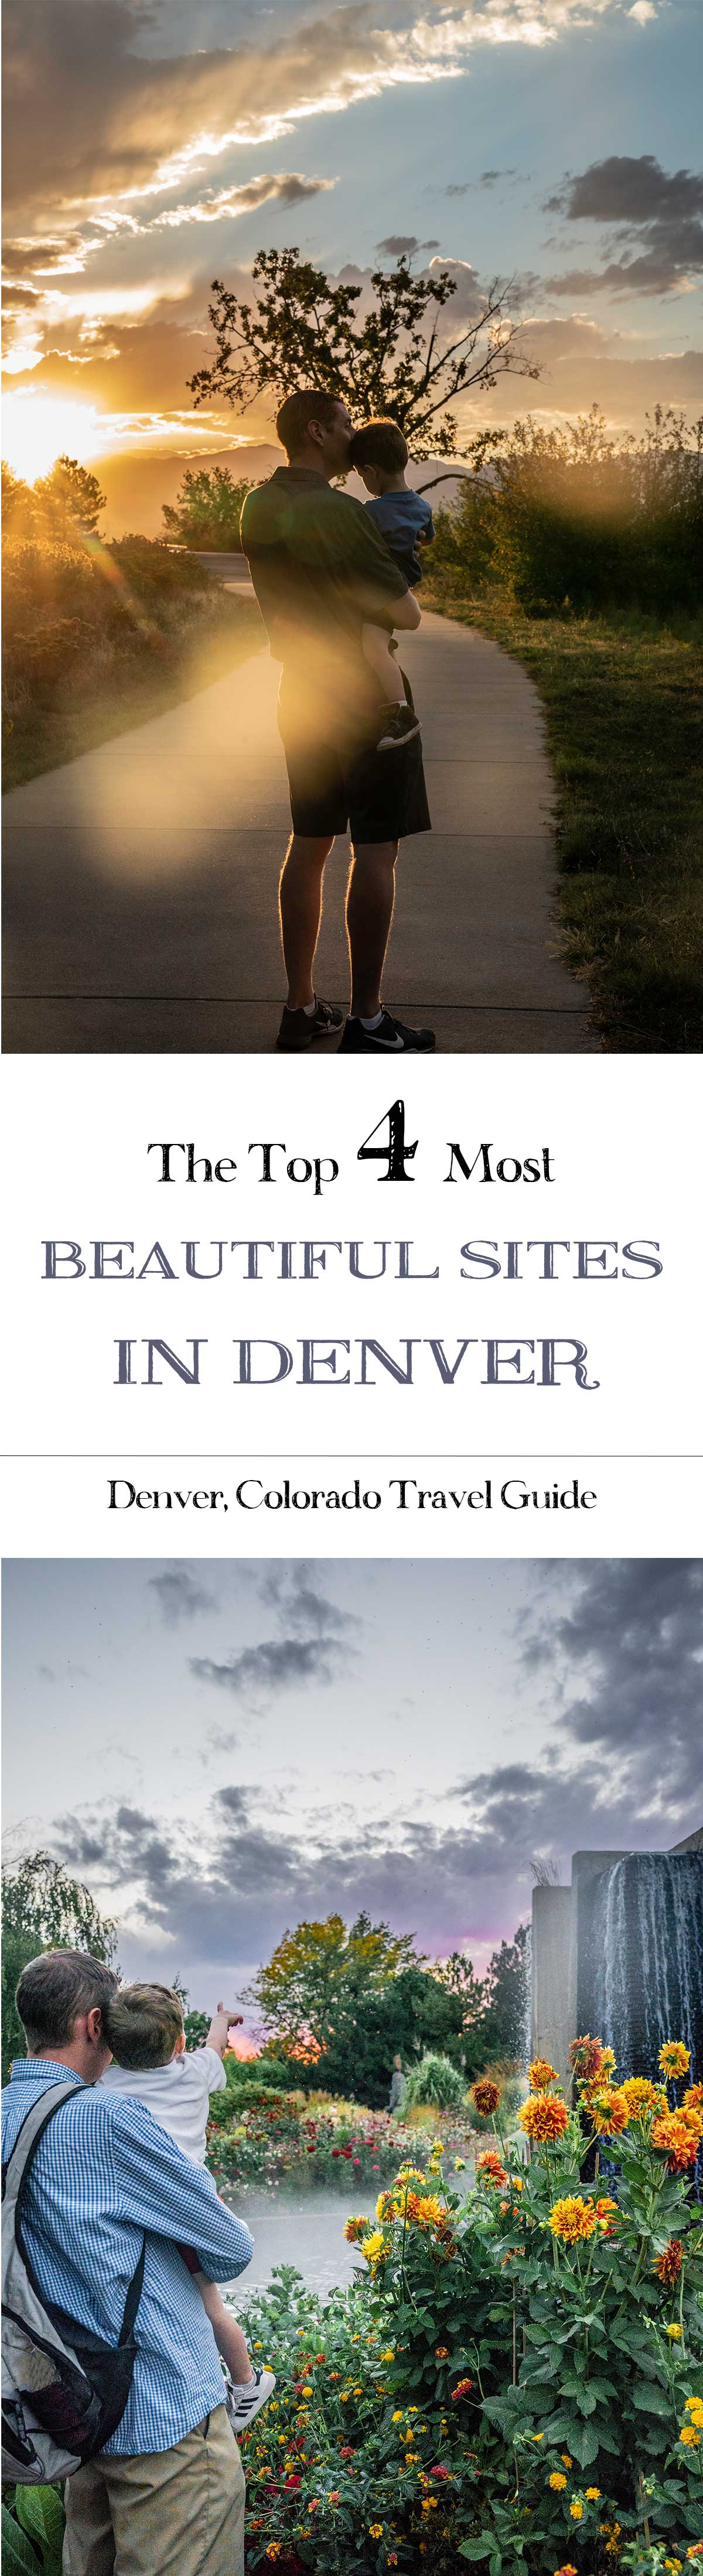 The-Top-4-Most-Beautiful-Sites-in-Denver-Colorado-Travel-Guide